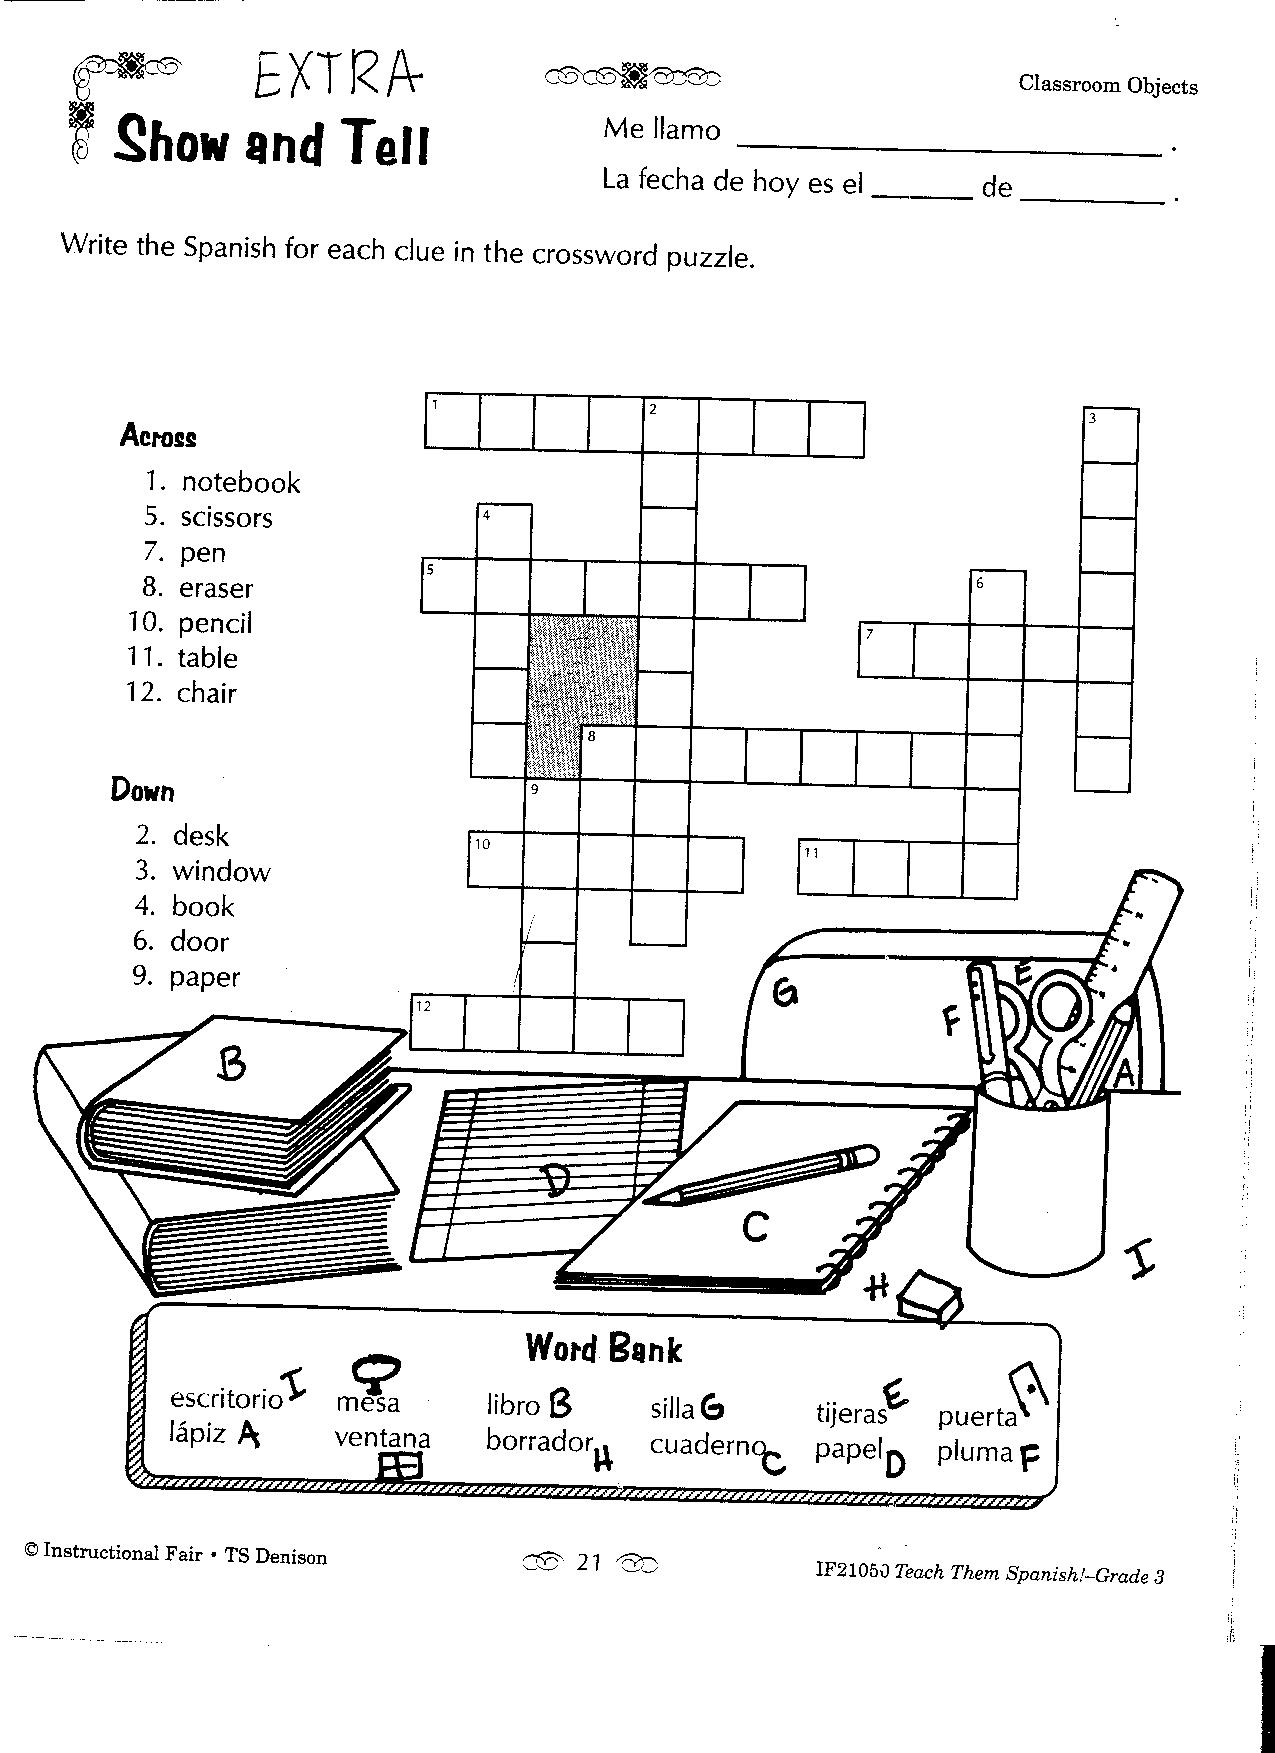 17 Best Images Of French Classroom Objects Worksheet